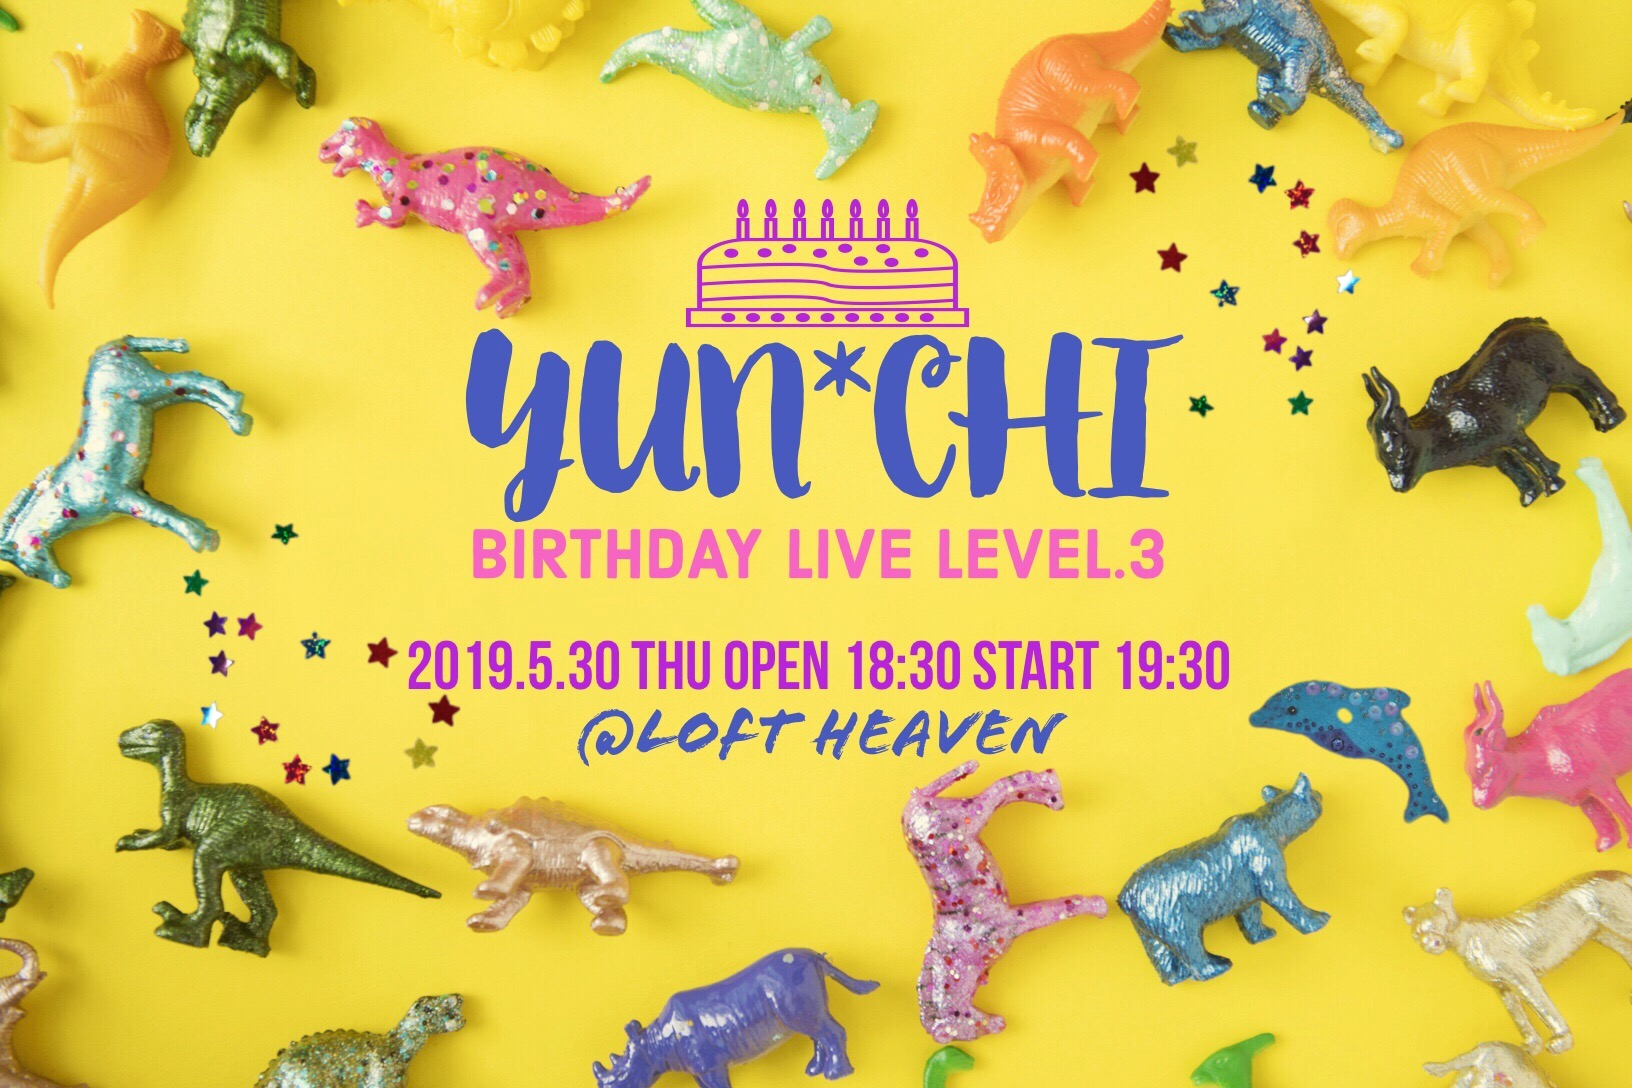 Yun*chi BIRTH DAY LIVE Level.3(コンプリートチケット)